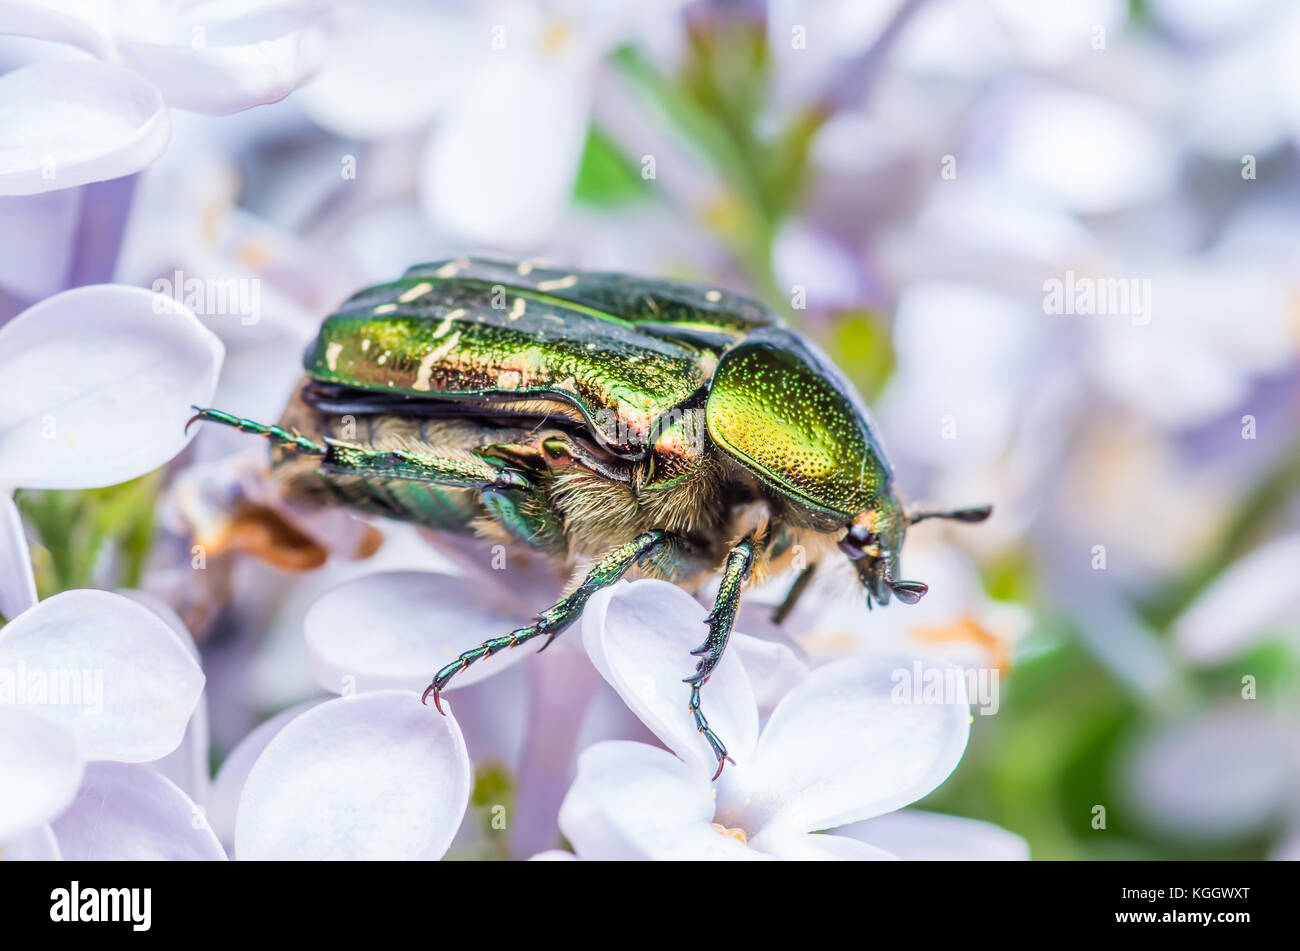 Cetonia Aurata Flower Chafer Green June Beetle Bug Insect Macro - Stock Image